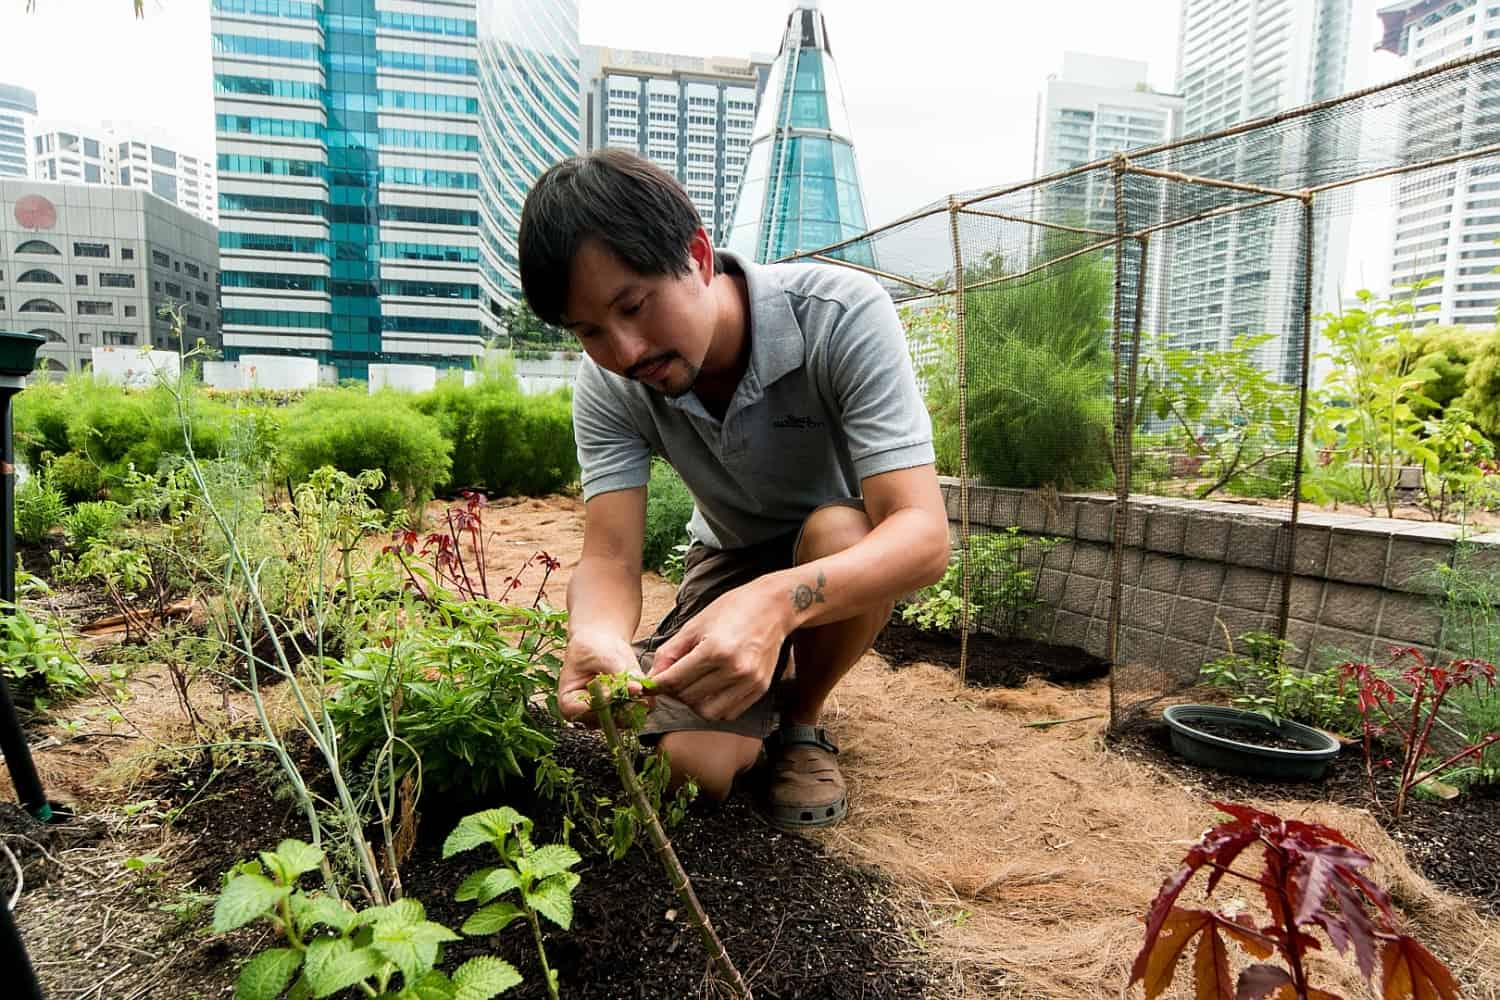 Singapore Is Converting Vacant Space Into Bountiful Urban Farms True Activist